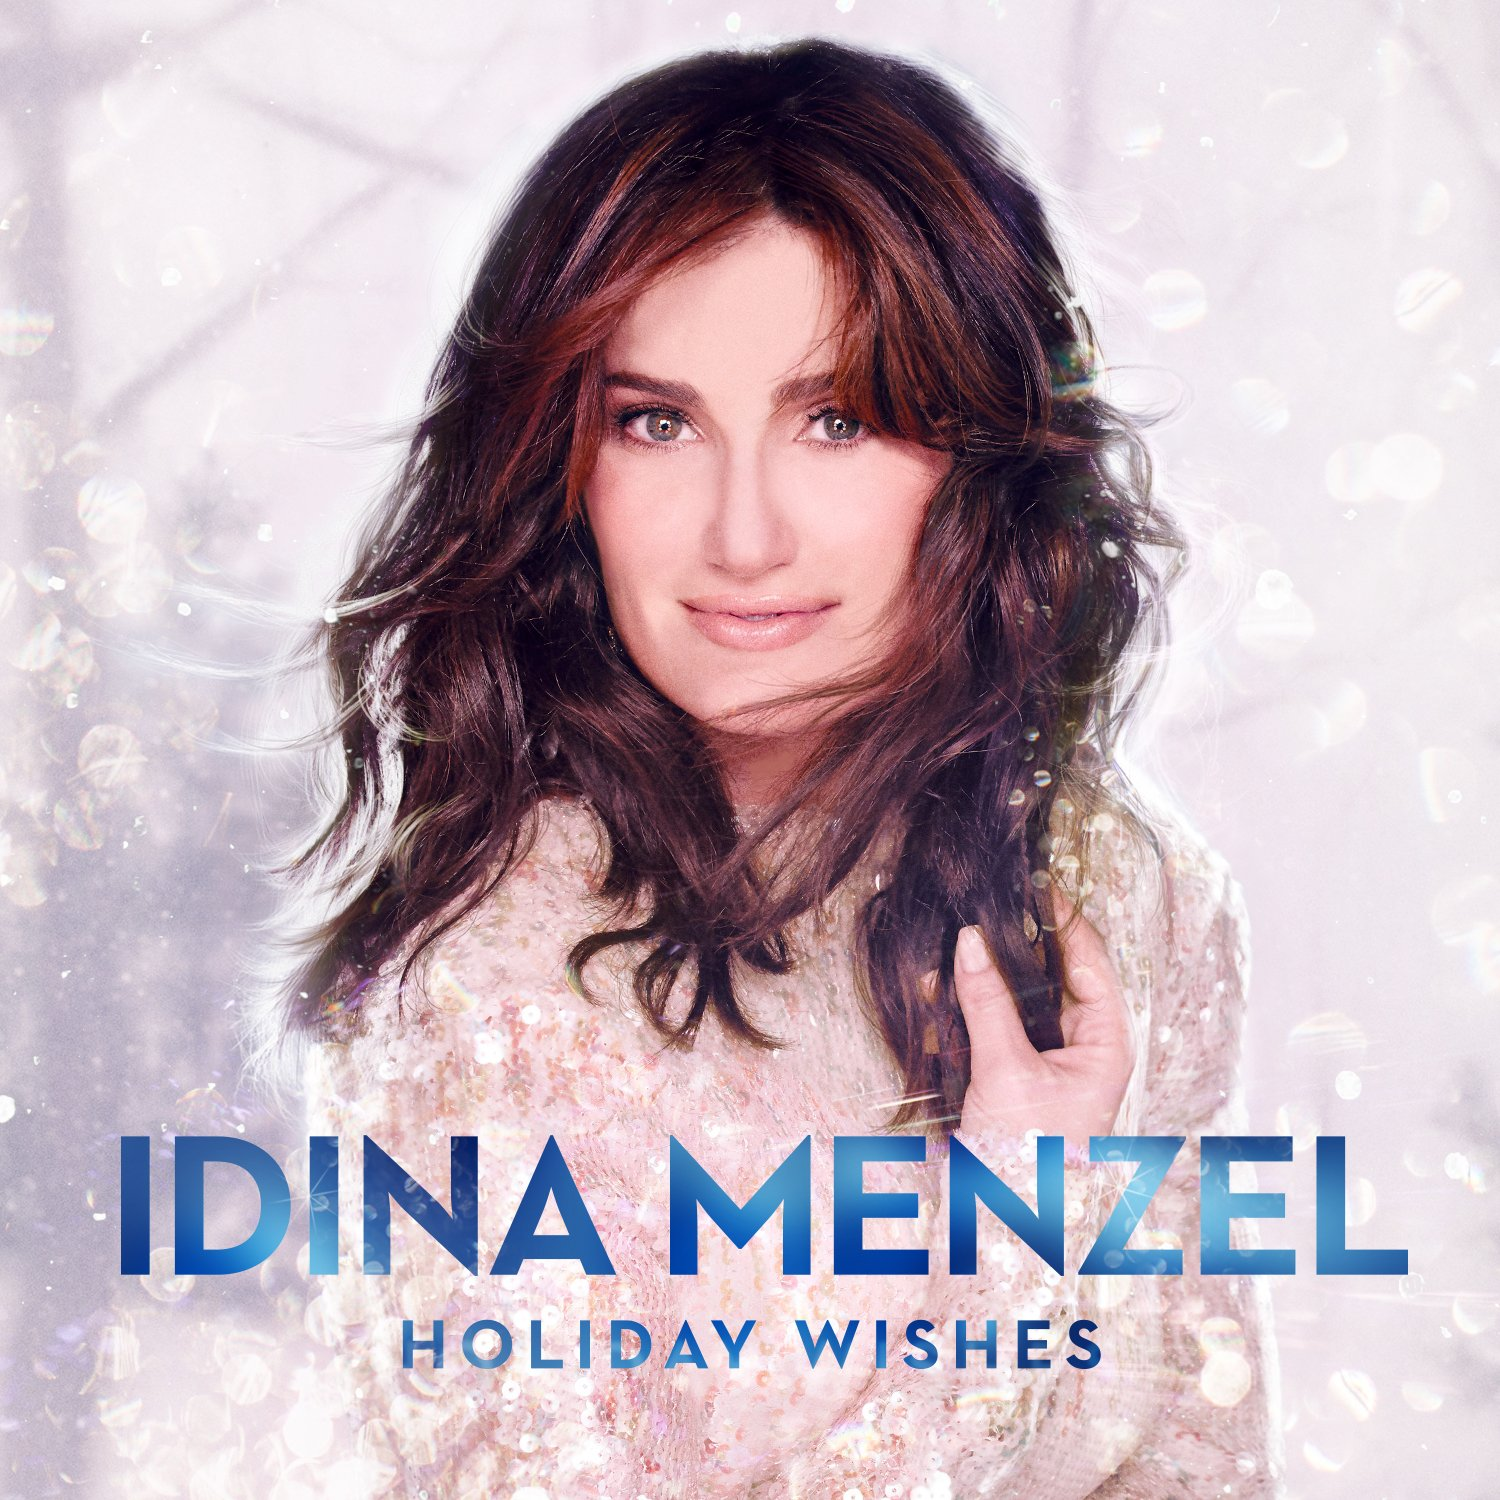 Holiday Wishes Album by Idina Menzel